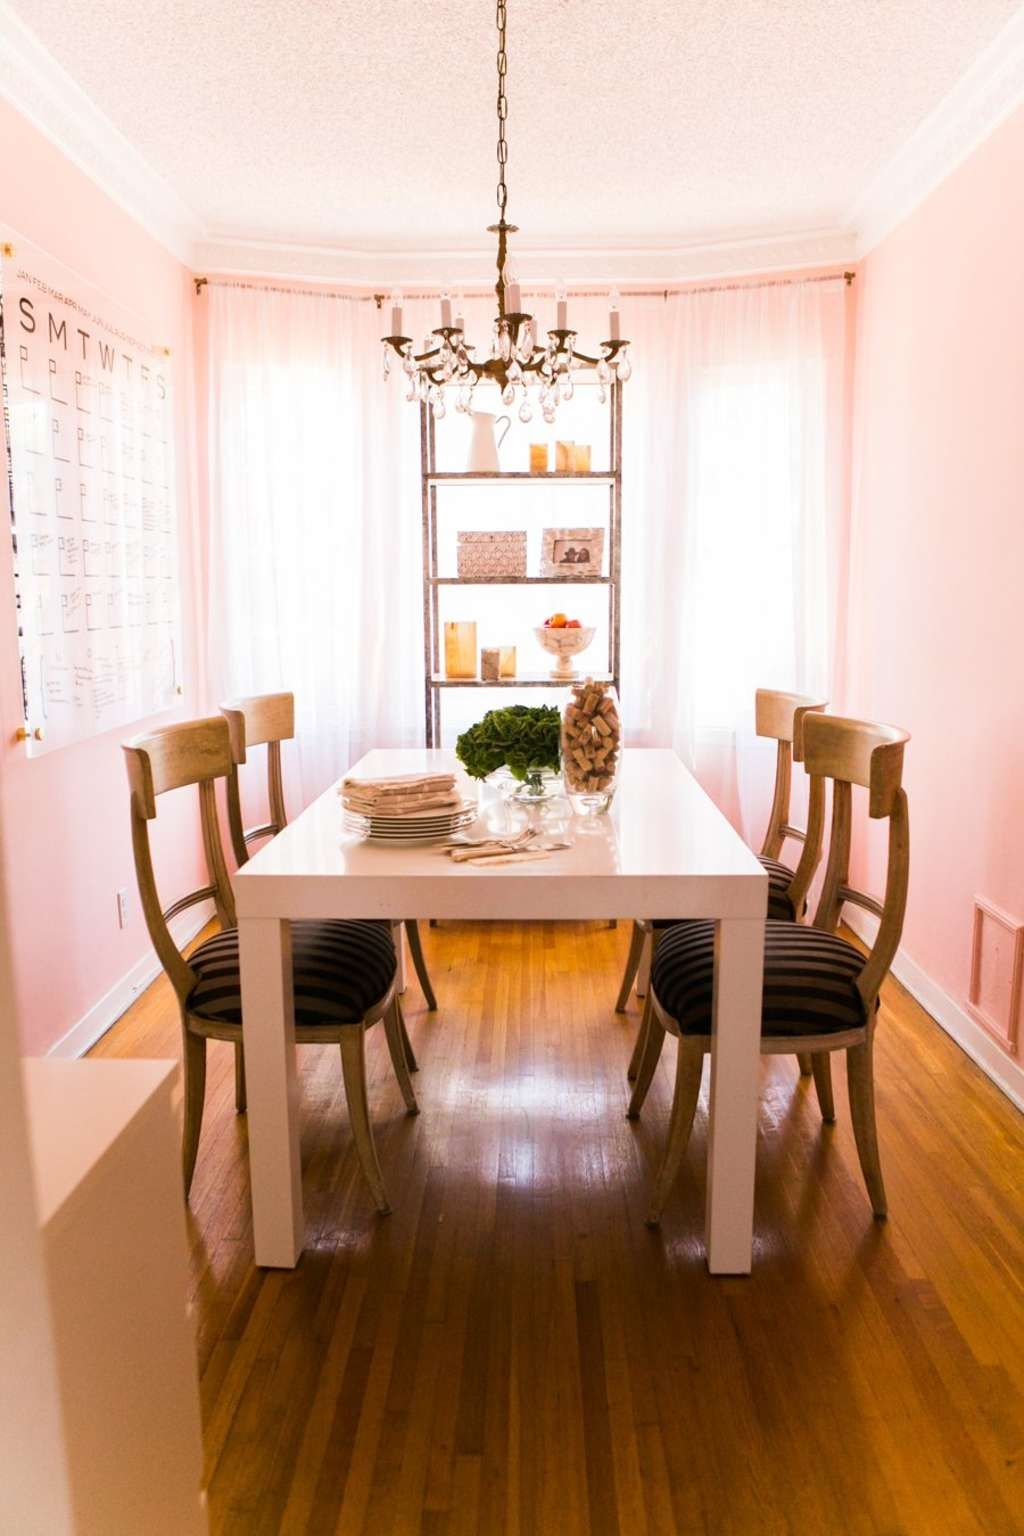 The Psychology & Science of Decorating: Understanding the 5 Ways We Experience a Room